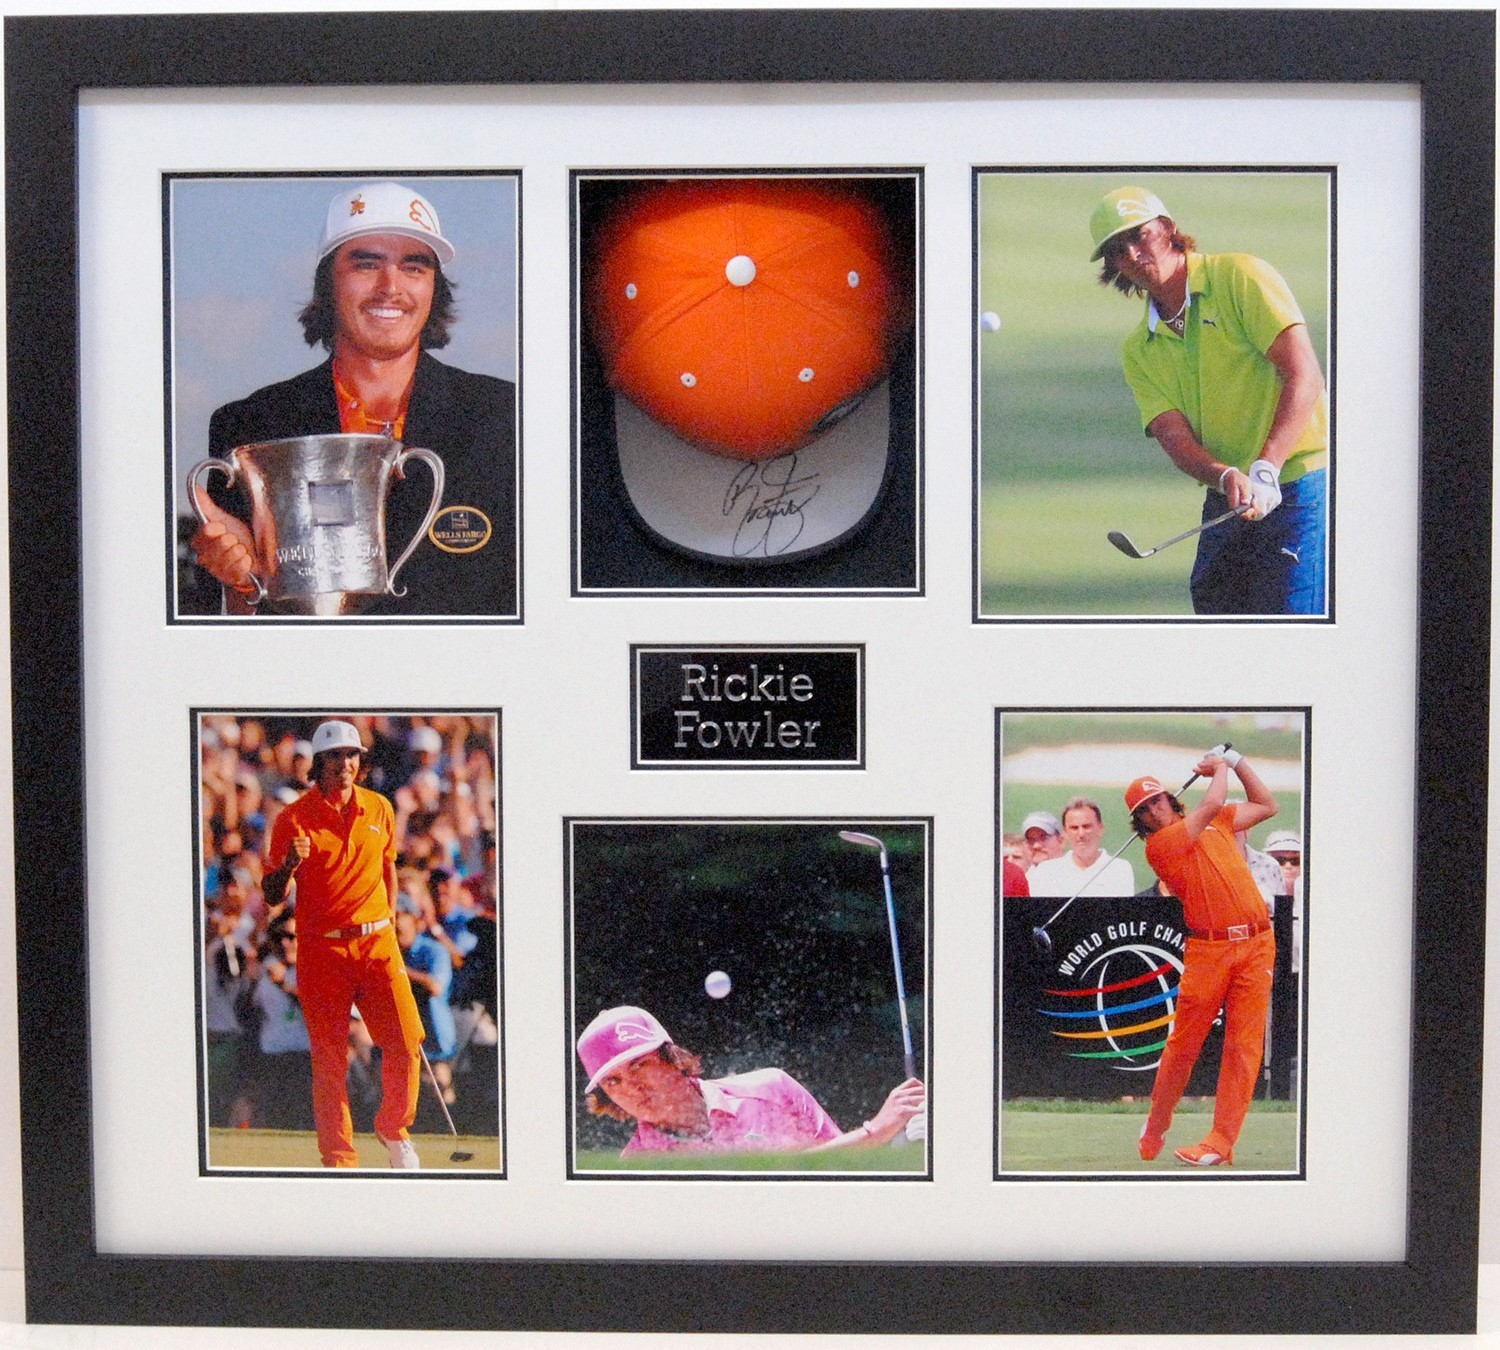 Rickie Fowler Signed Display